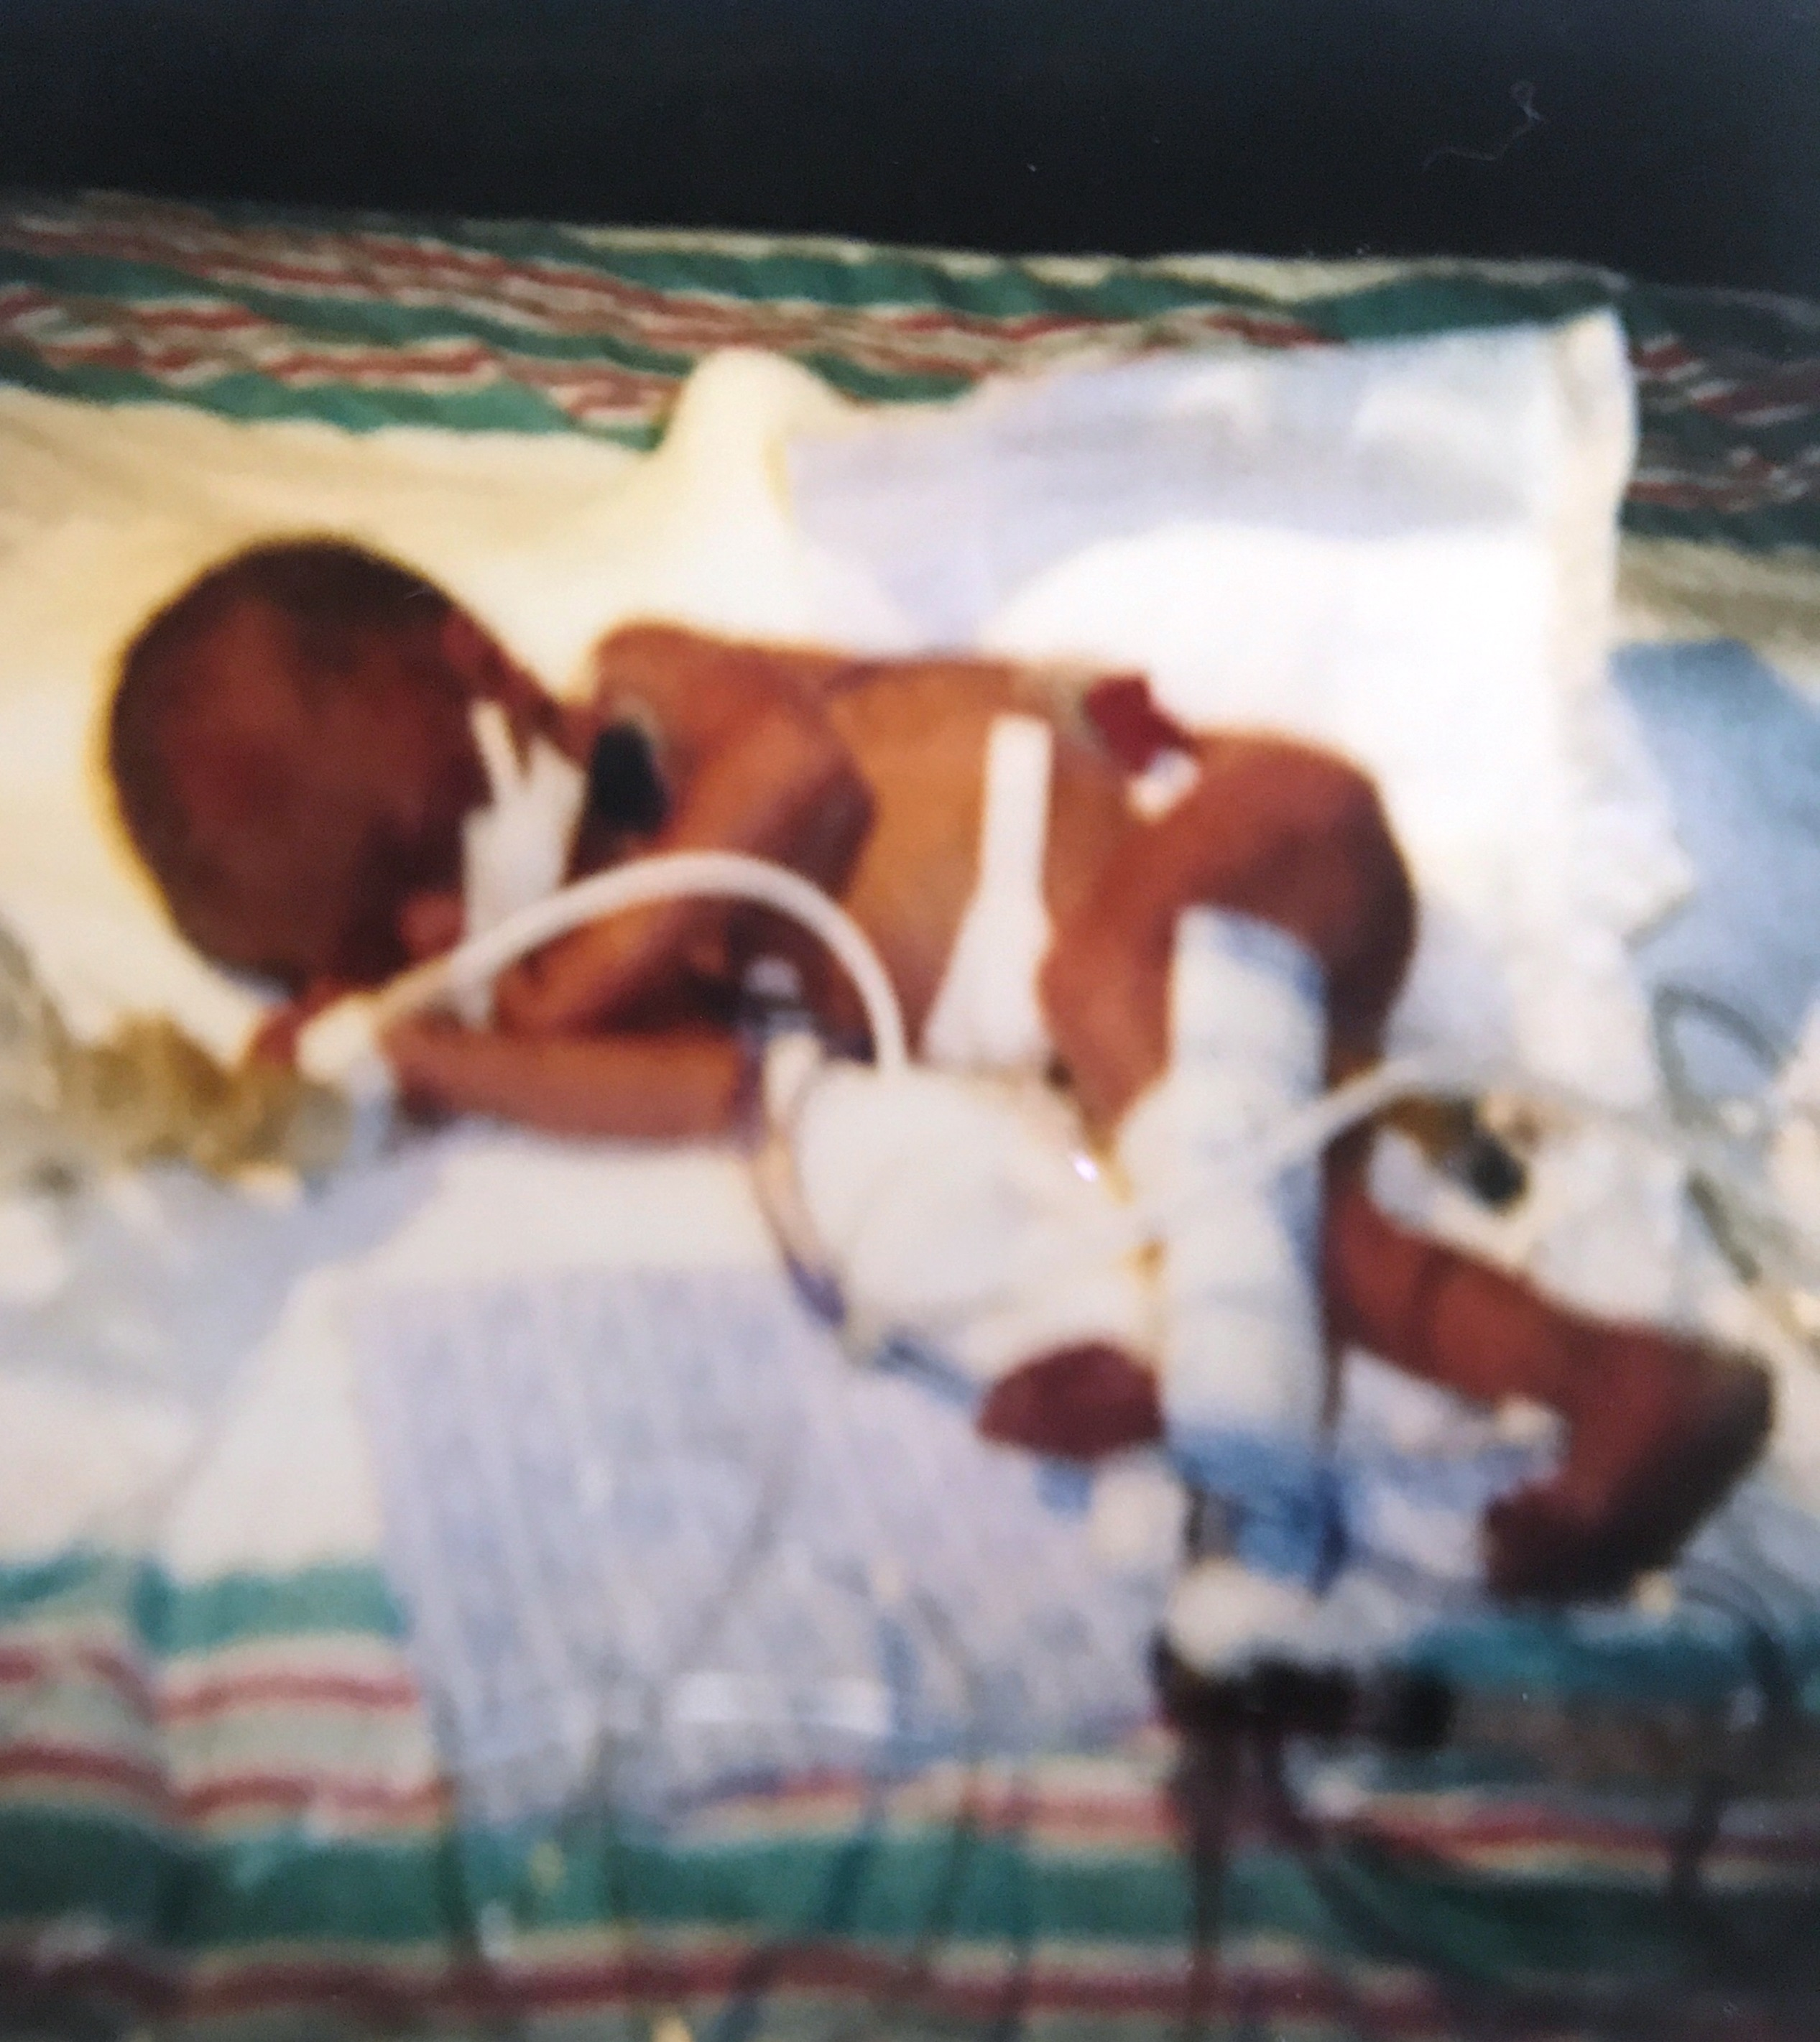 A premature baby lies on a blanket in a NICU incubator with multiple tubes coming out of her body.